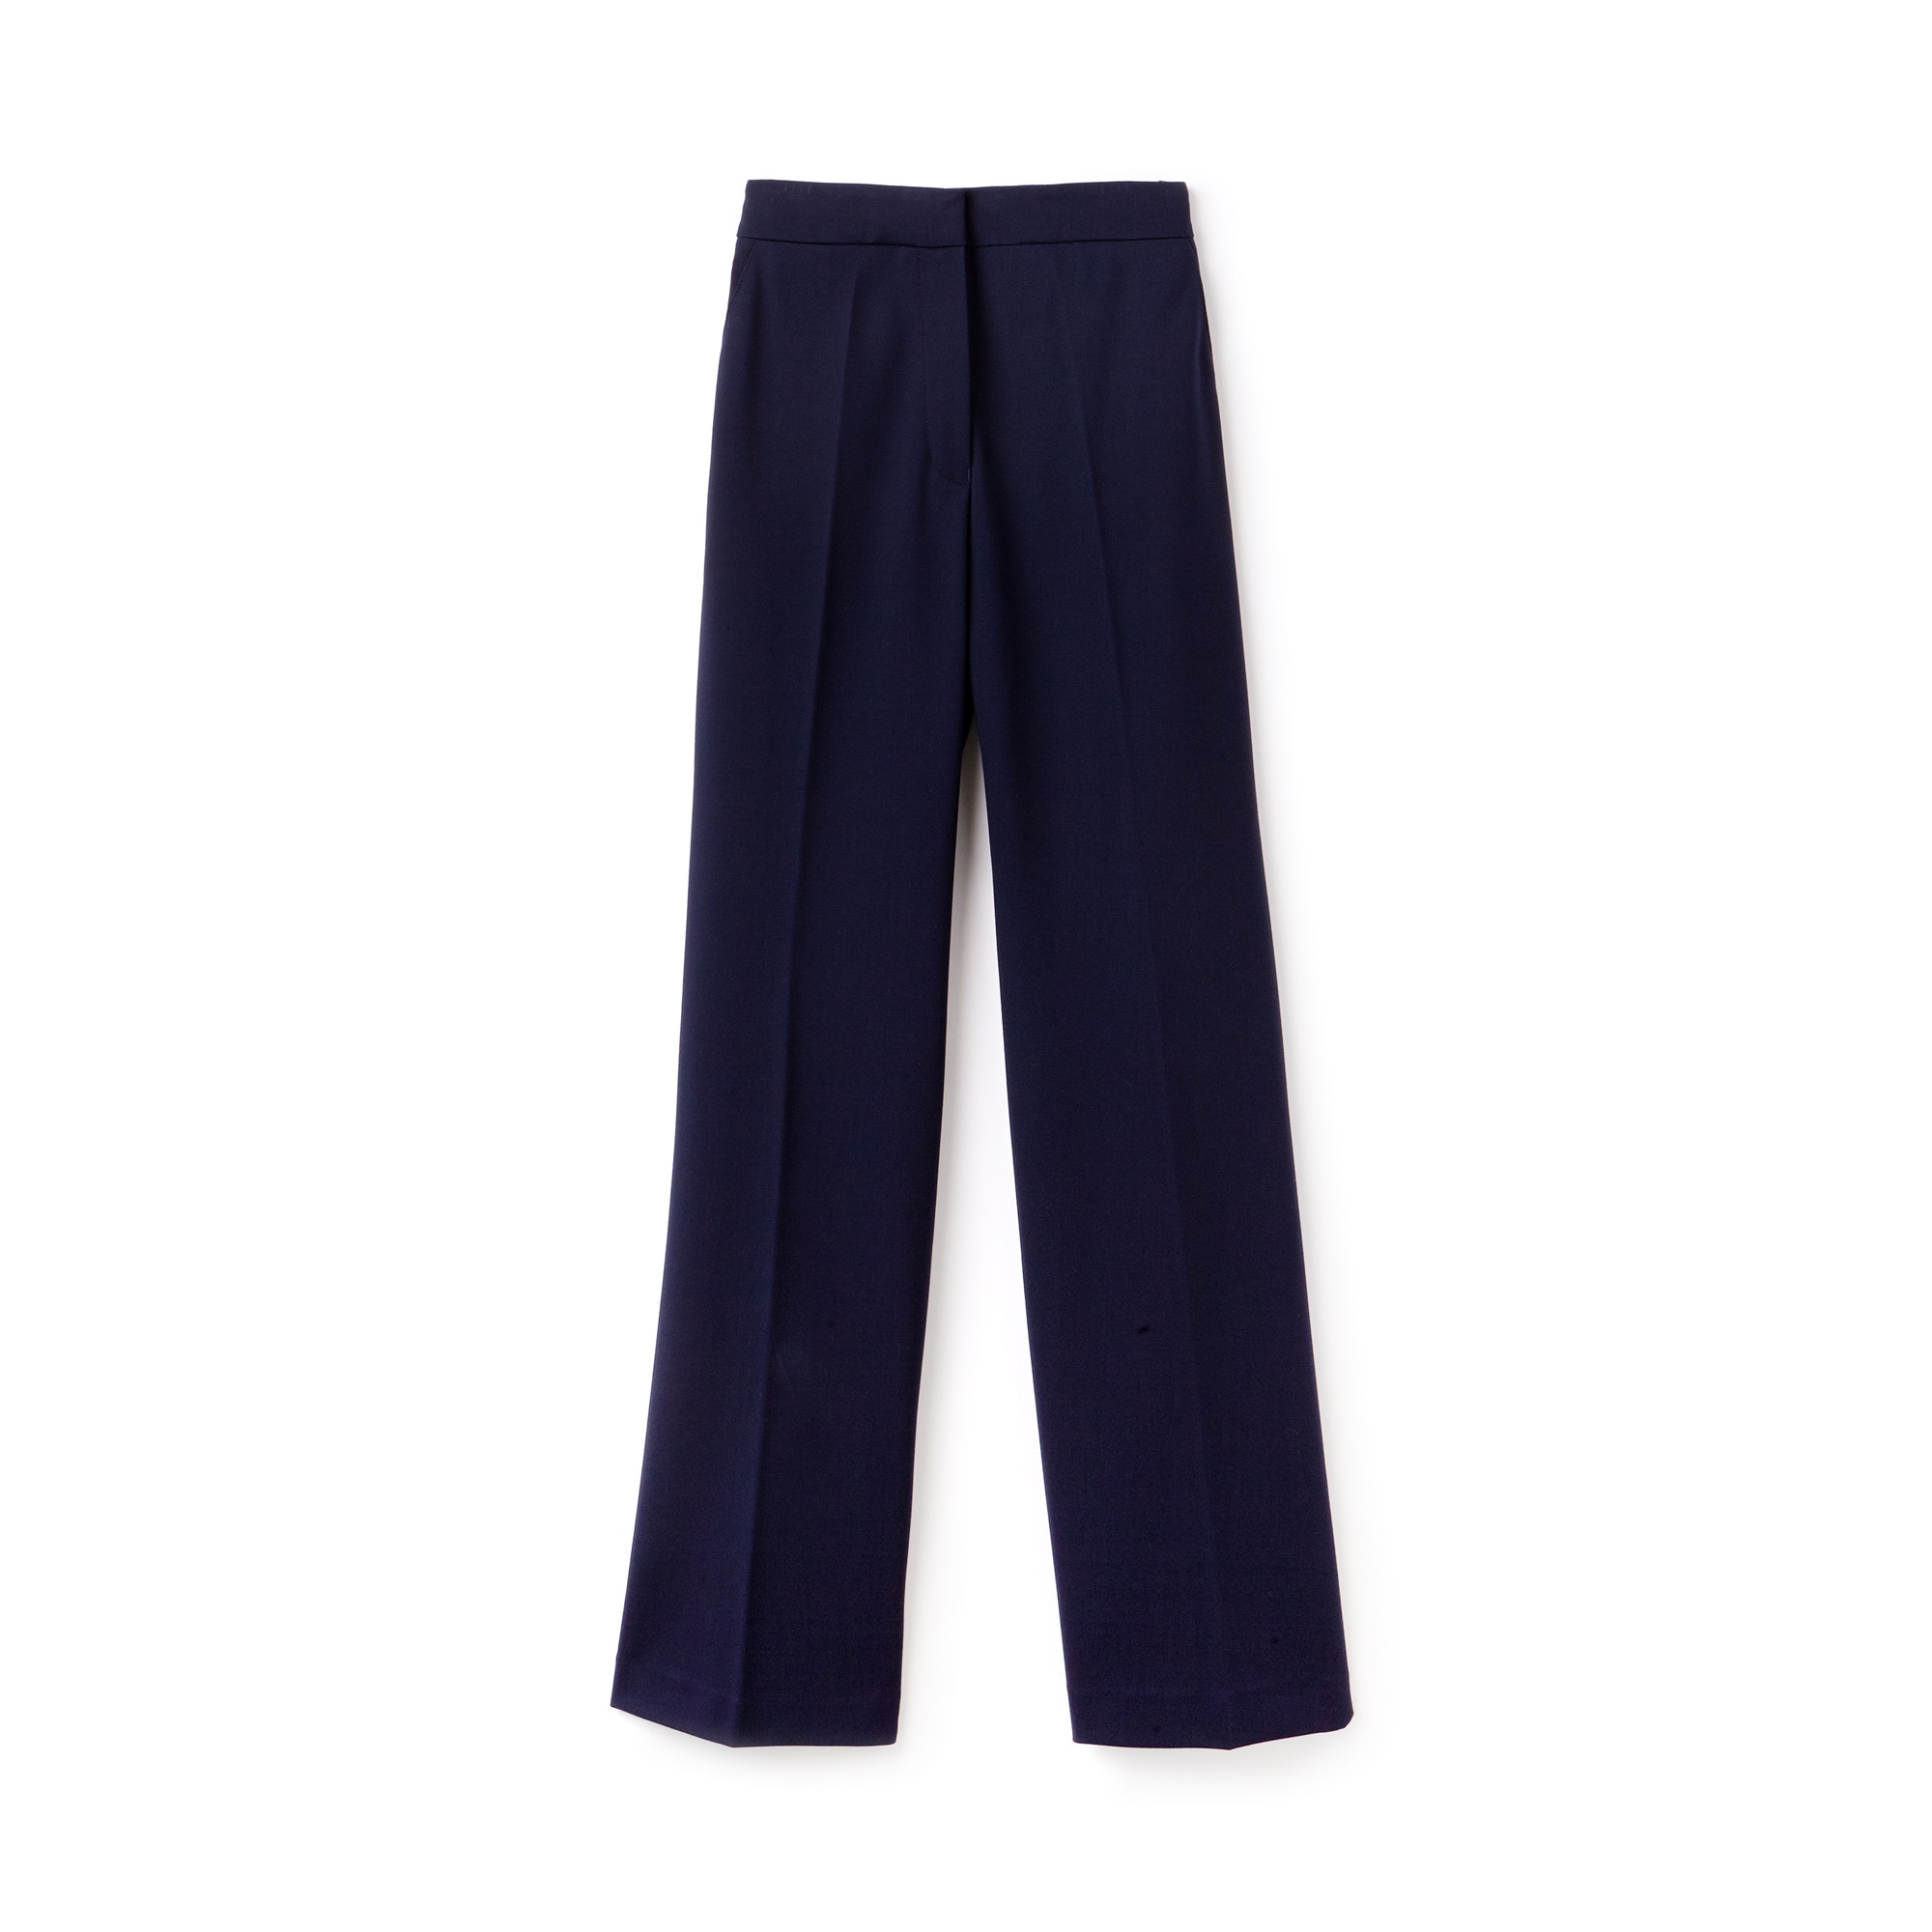 Women's Flowing Stretch Milano Knit Pants